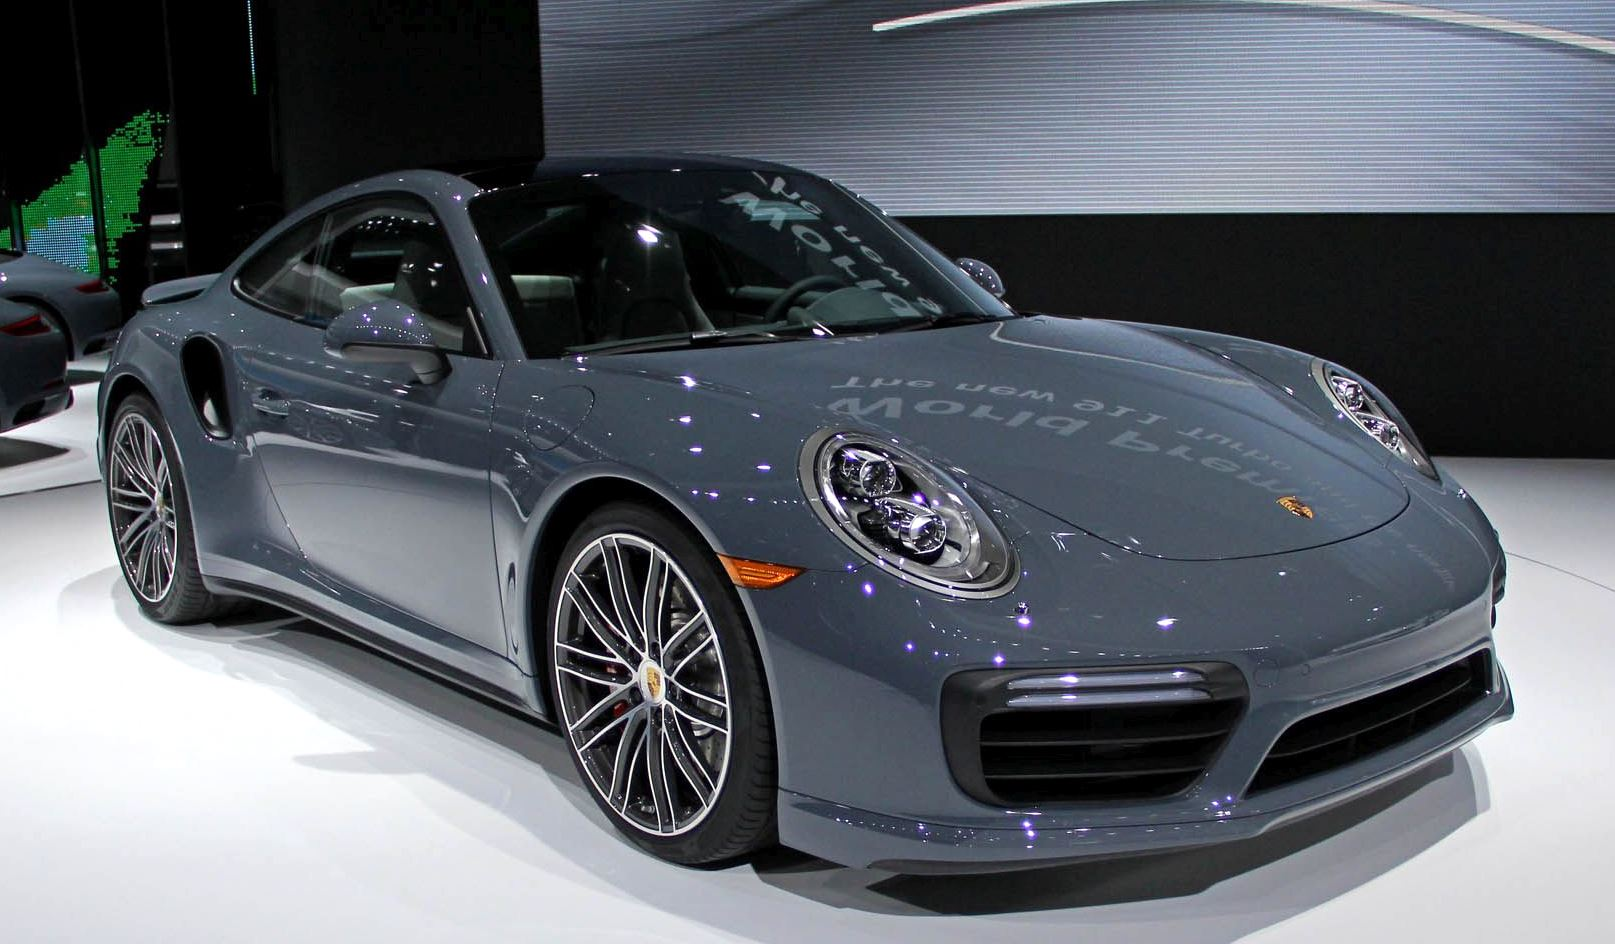 Porsche 911 Insurance Cost - What is the Actual Cost?